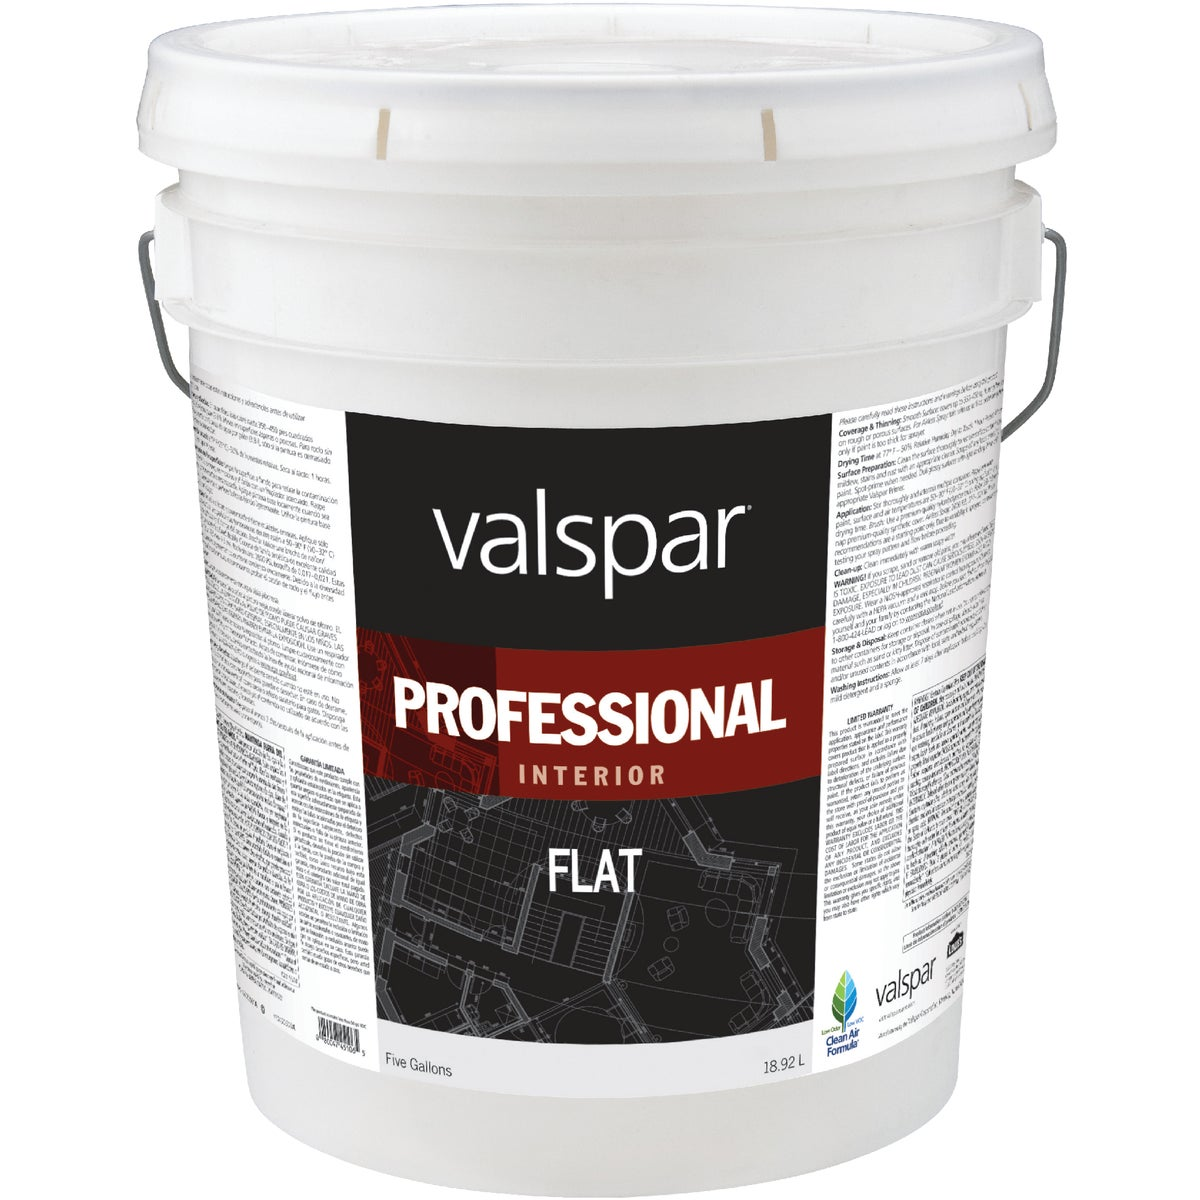 INT FLAT HIGH-HIDE PAINT - 045.0011600.008 by Valspar Corp